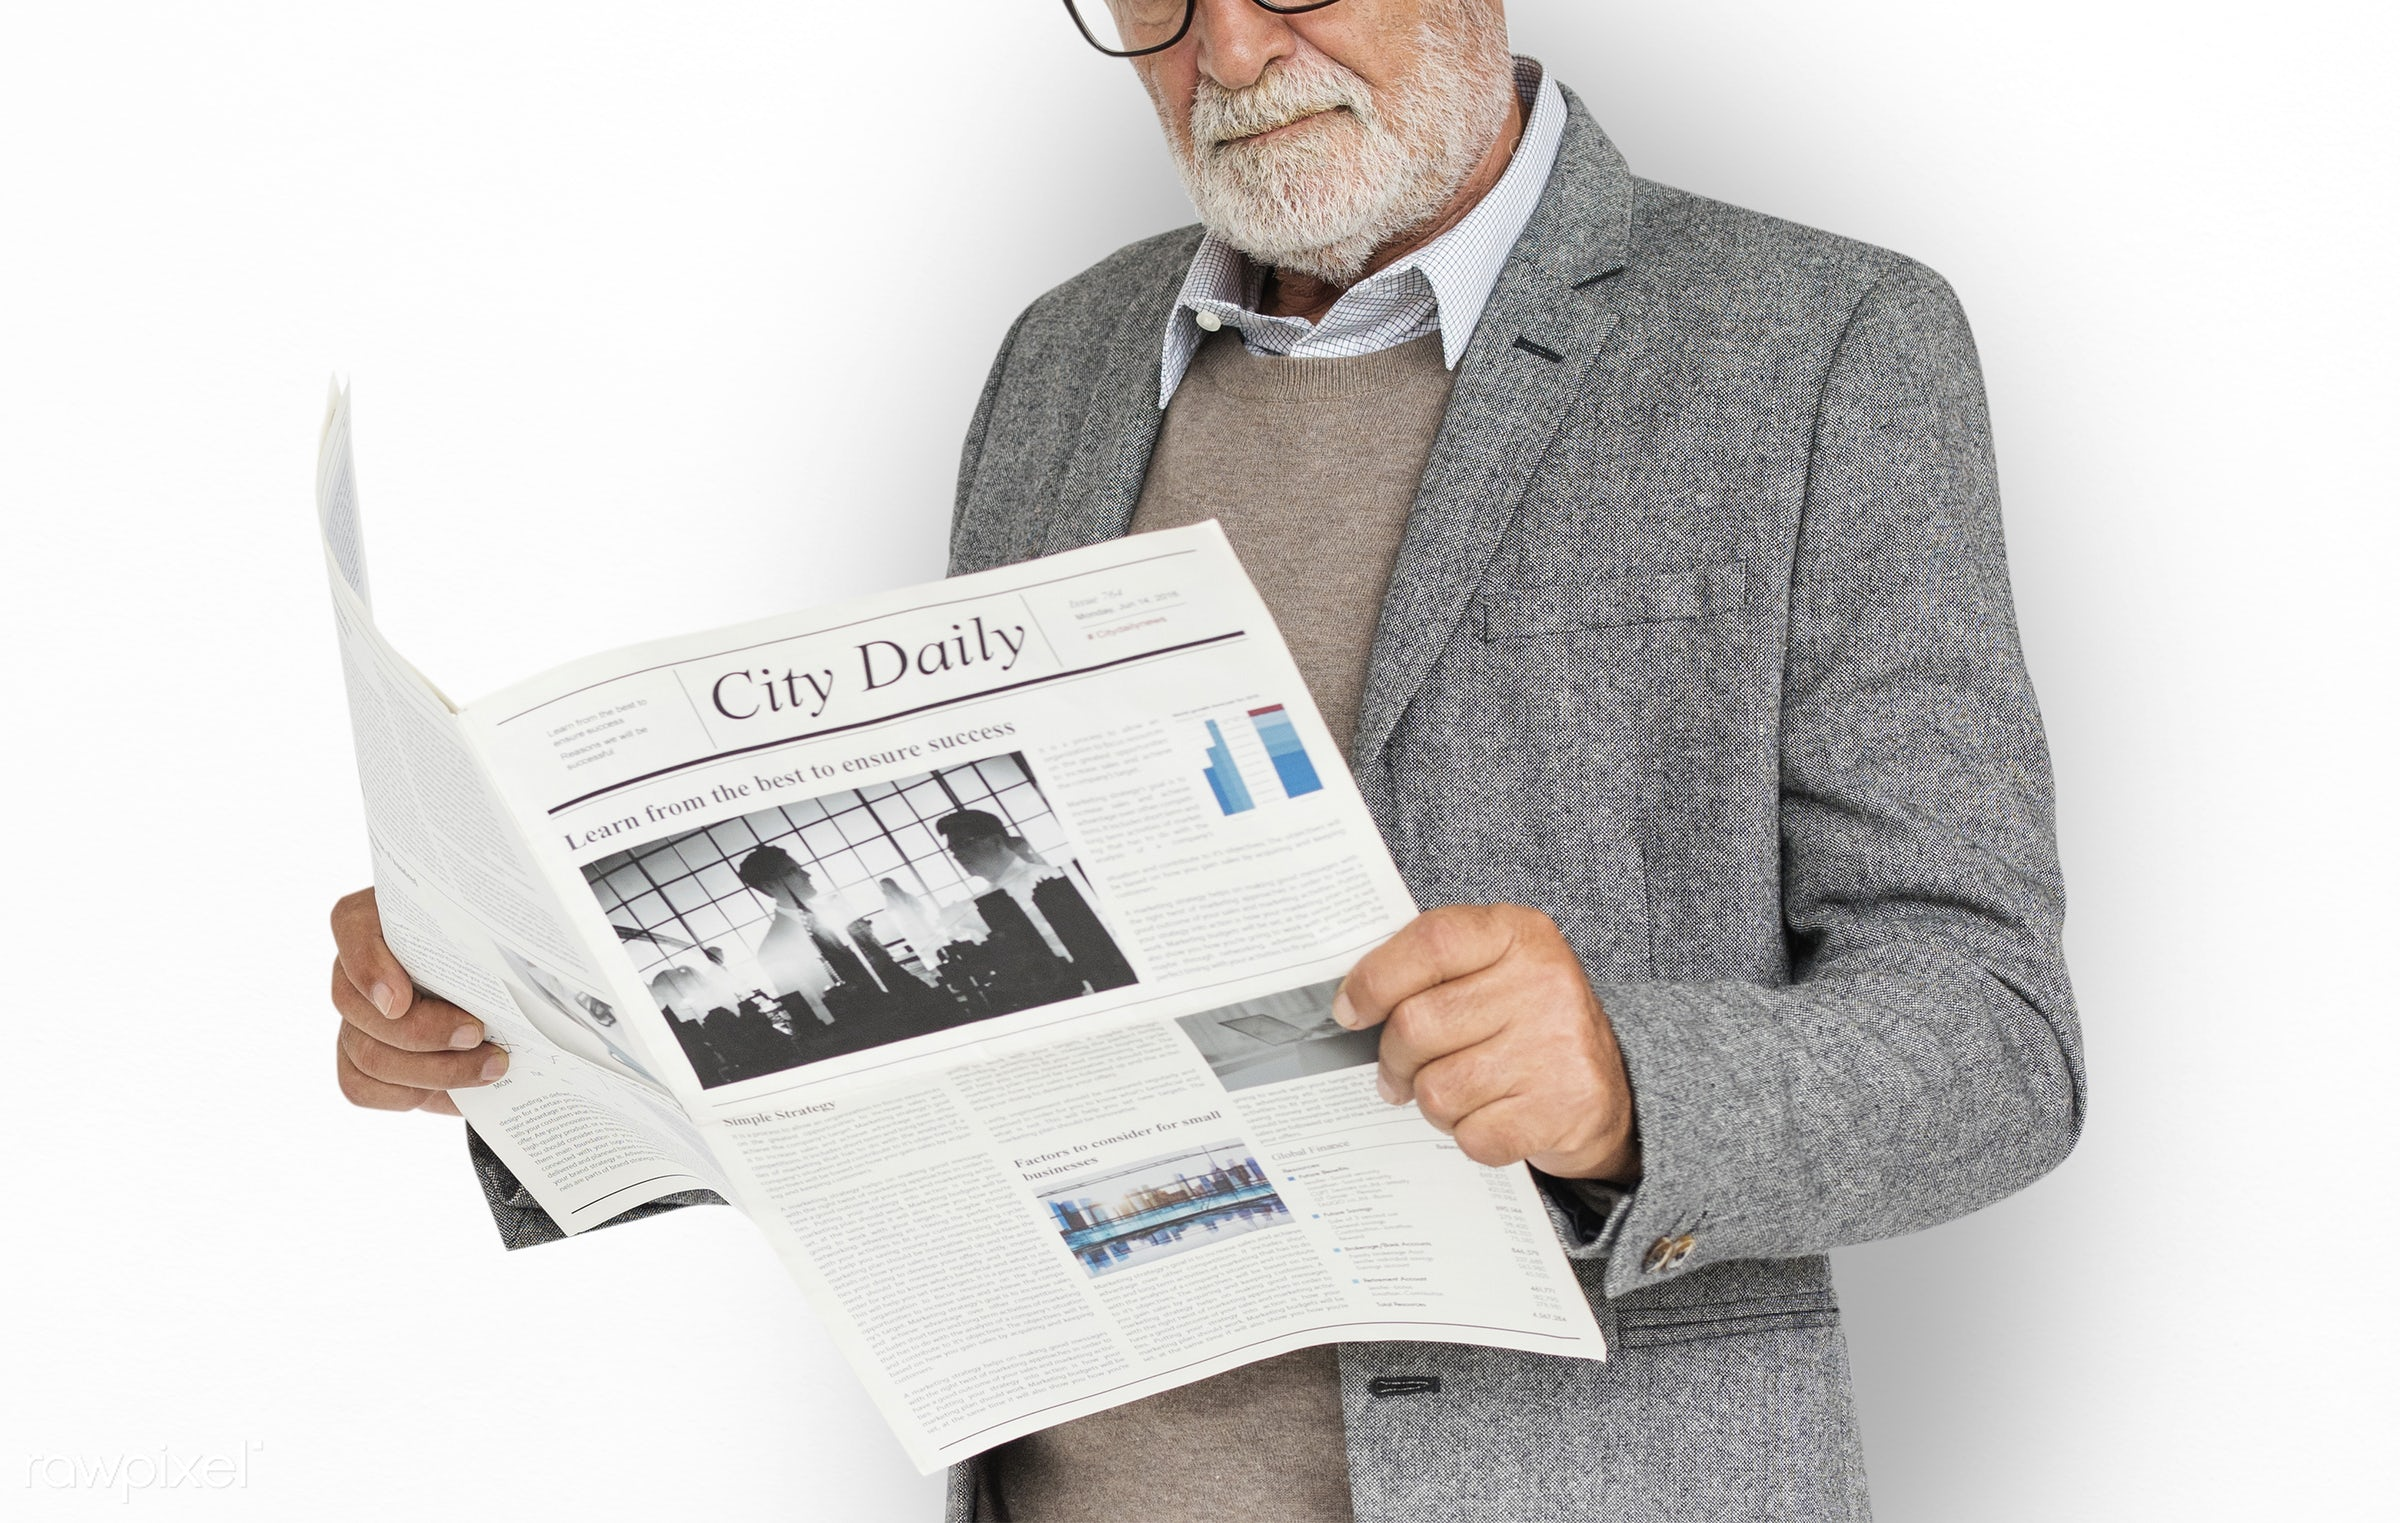 expression, studio, old, person, reading, business newspaper, business wear, business dressing, formal dressing, people,...